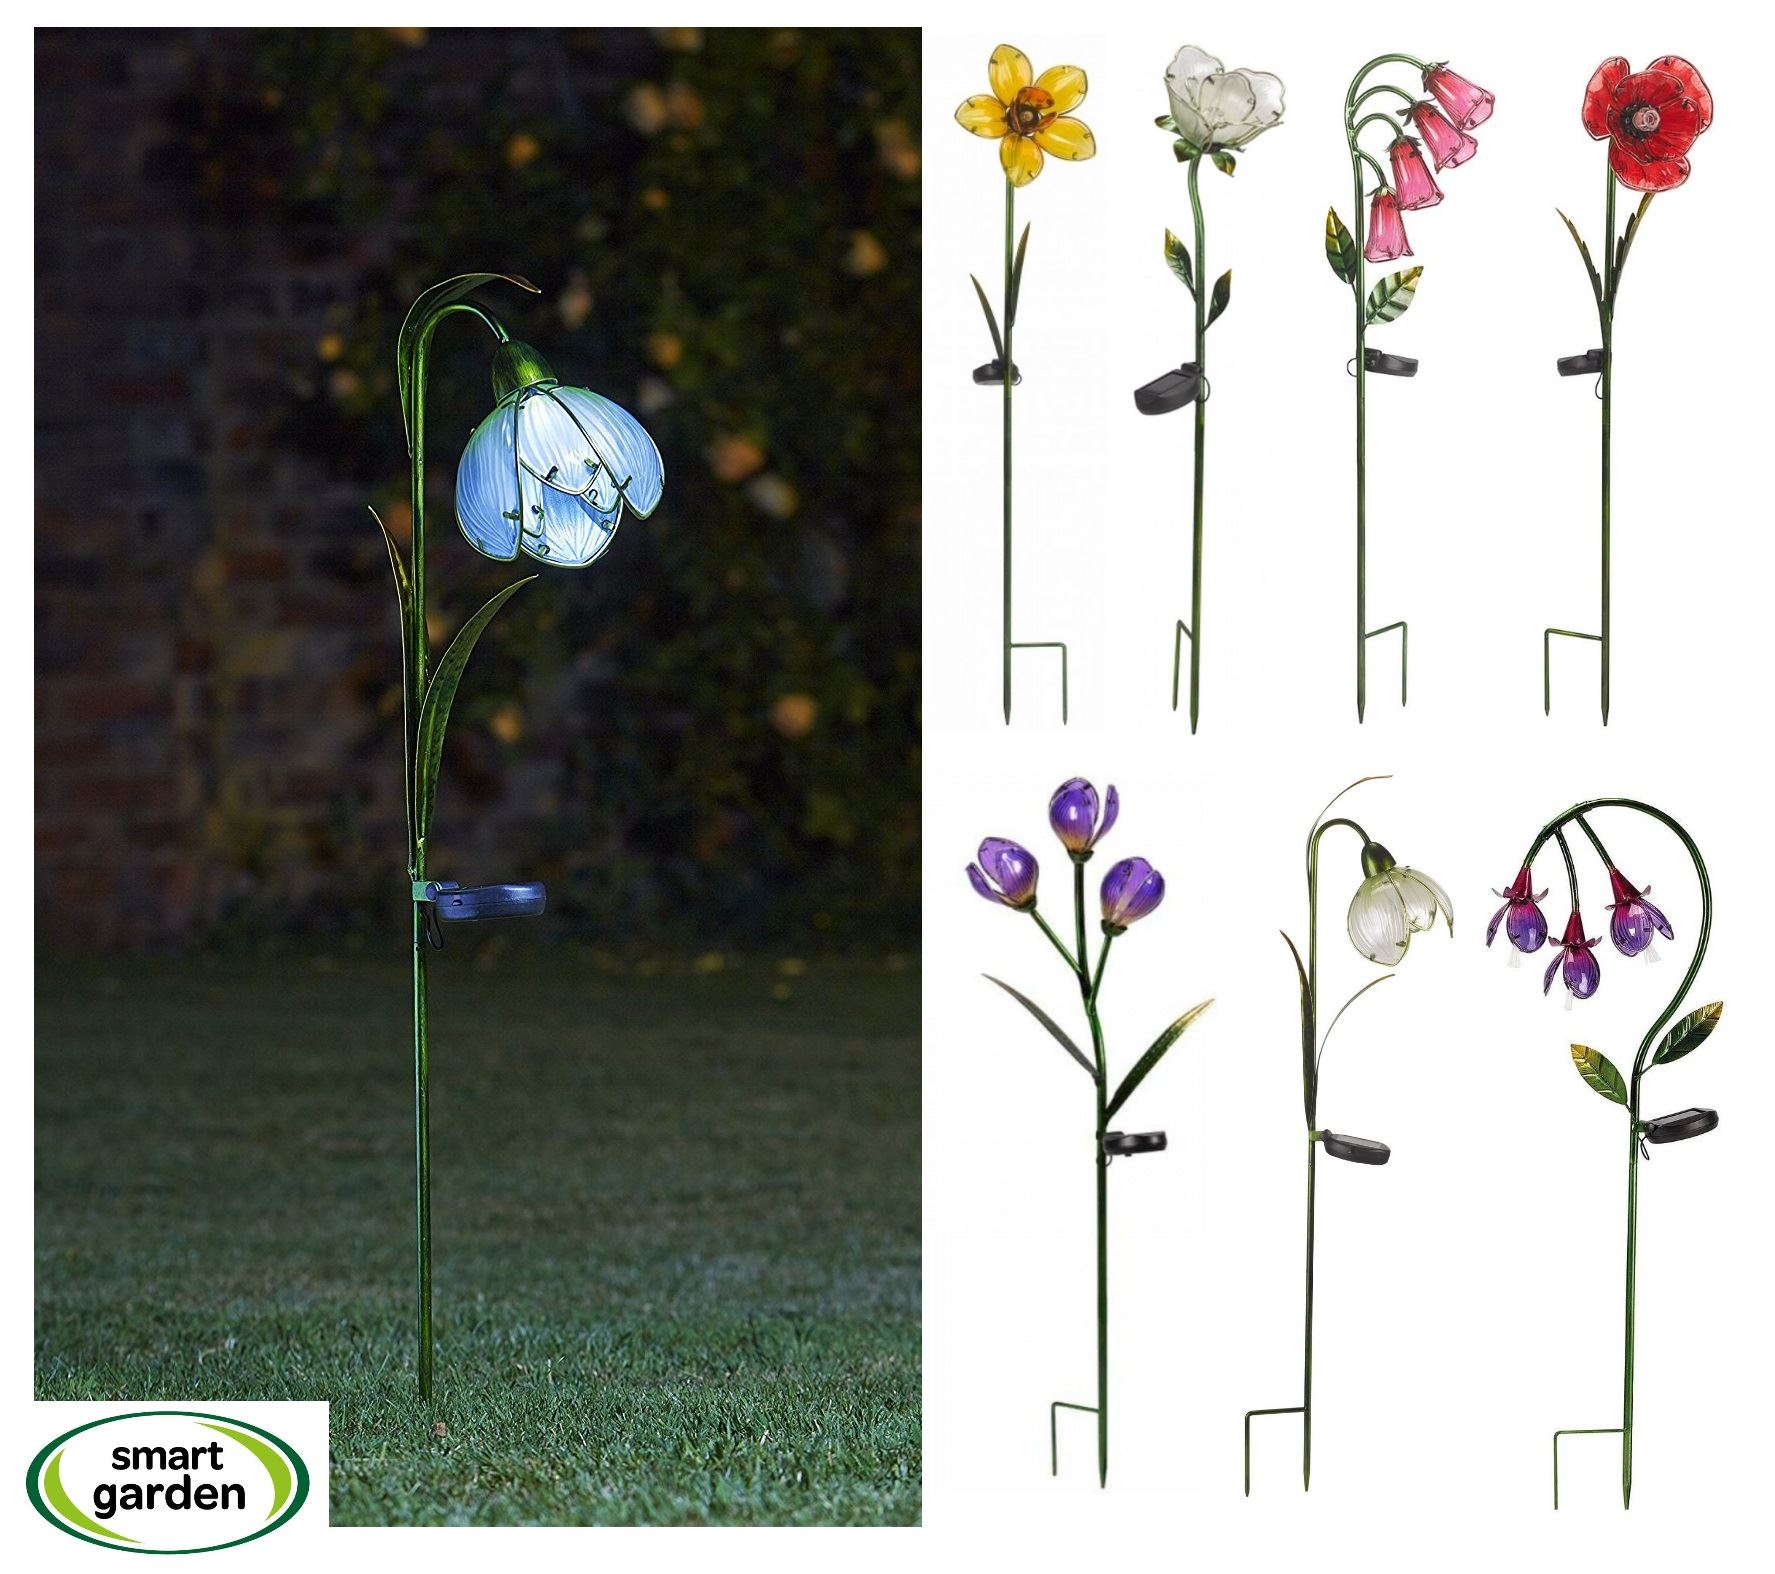 Solarlicht Garten Smart Garden Solar Light Led Garden Flower Rose Poppy